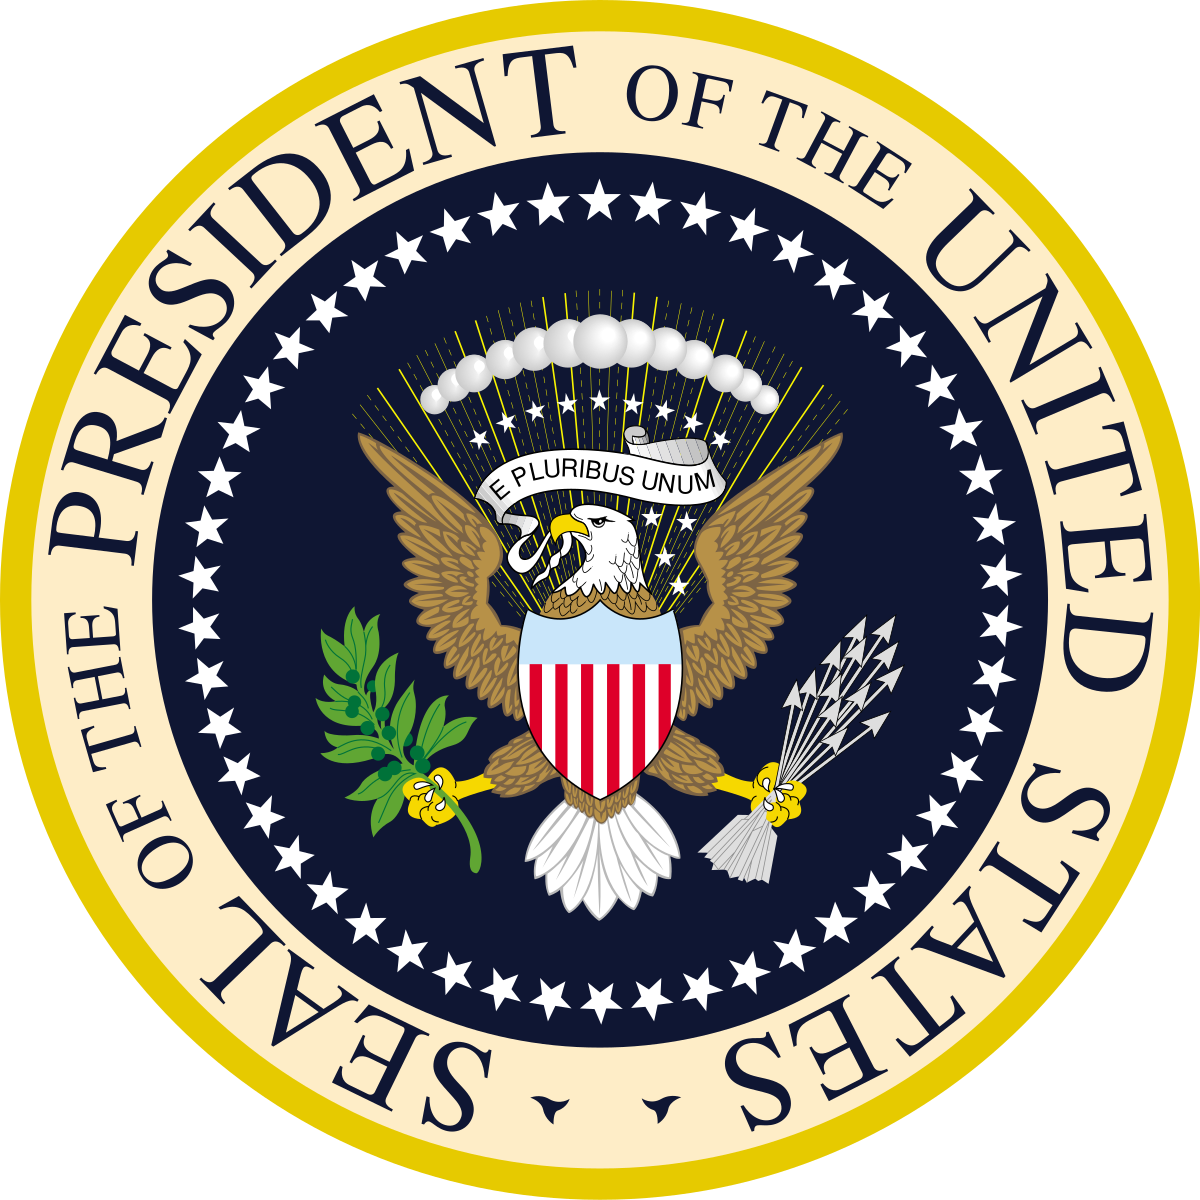 Presidents on money clipart png royalty free library Seal of the President of the United States - Wikipedia png royalty free library